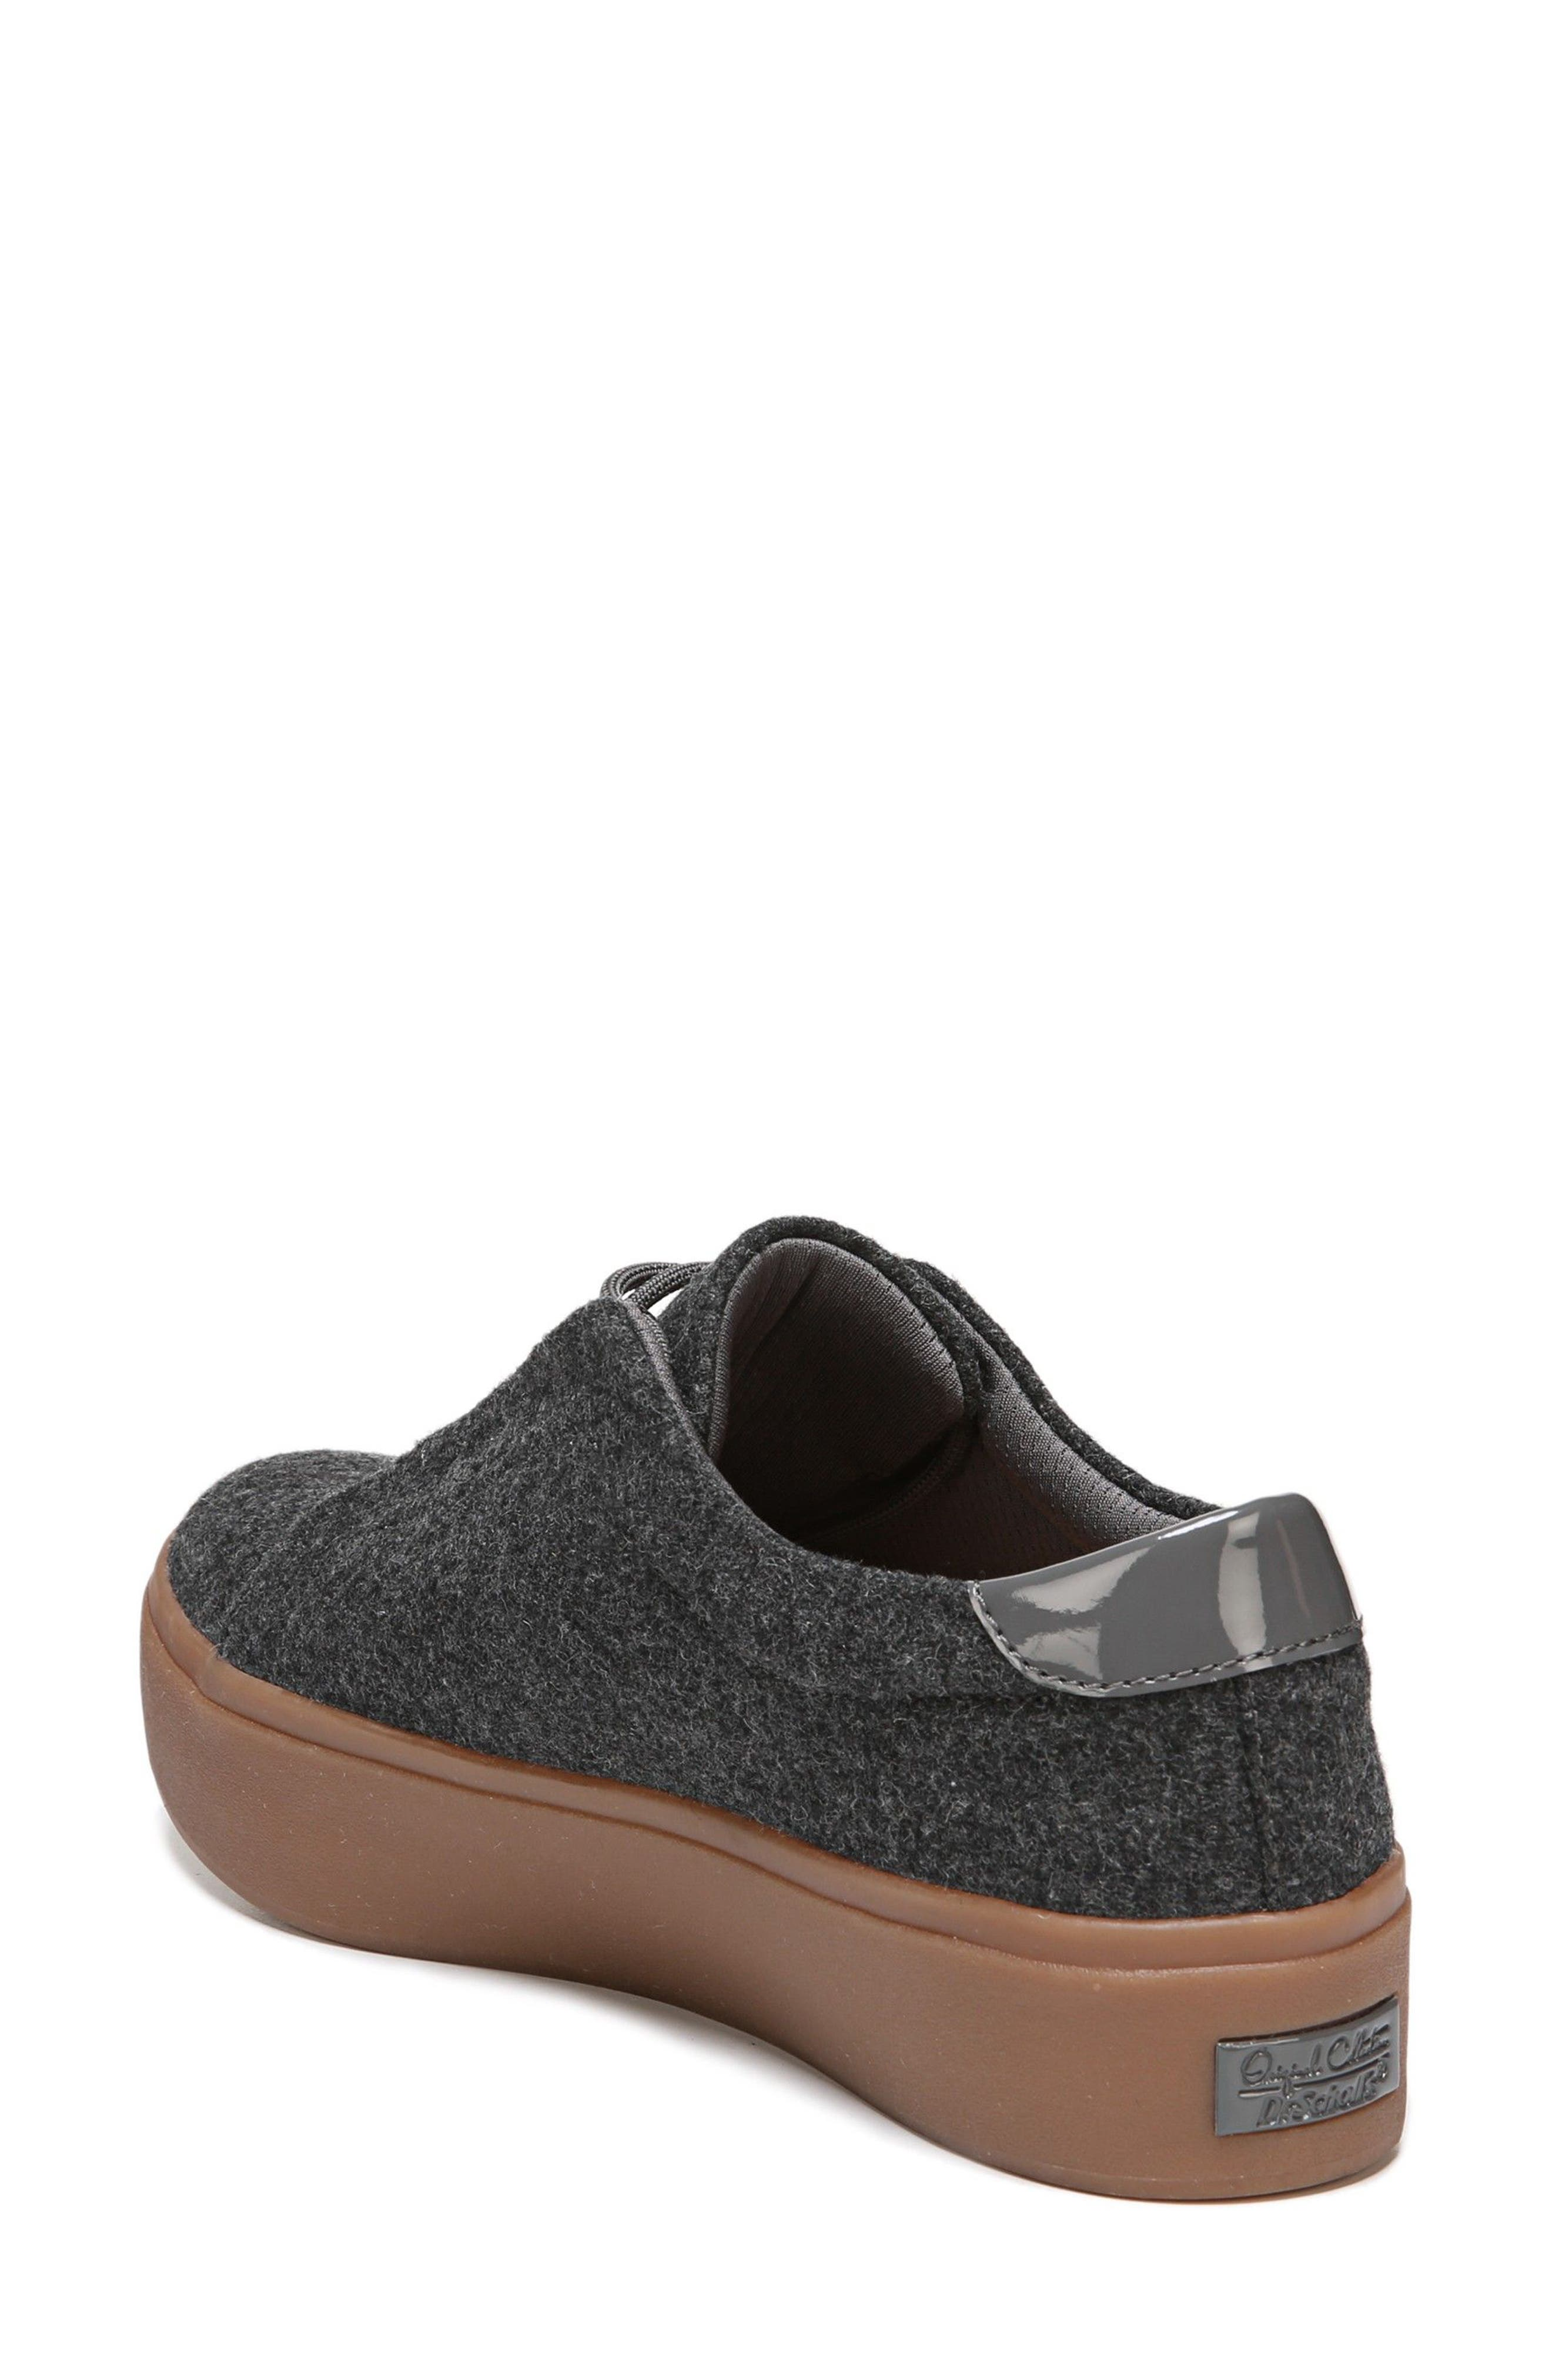 Abbot Sneaker,                             Alternate thumbnail 2, color,                             Charcoal Fabric